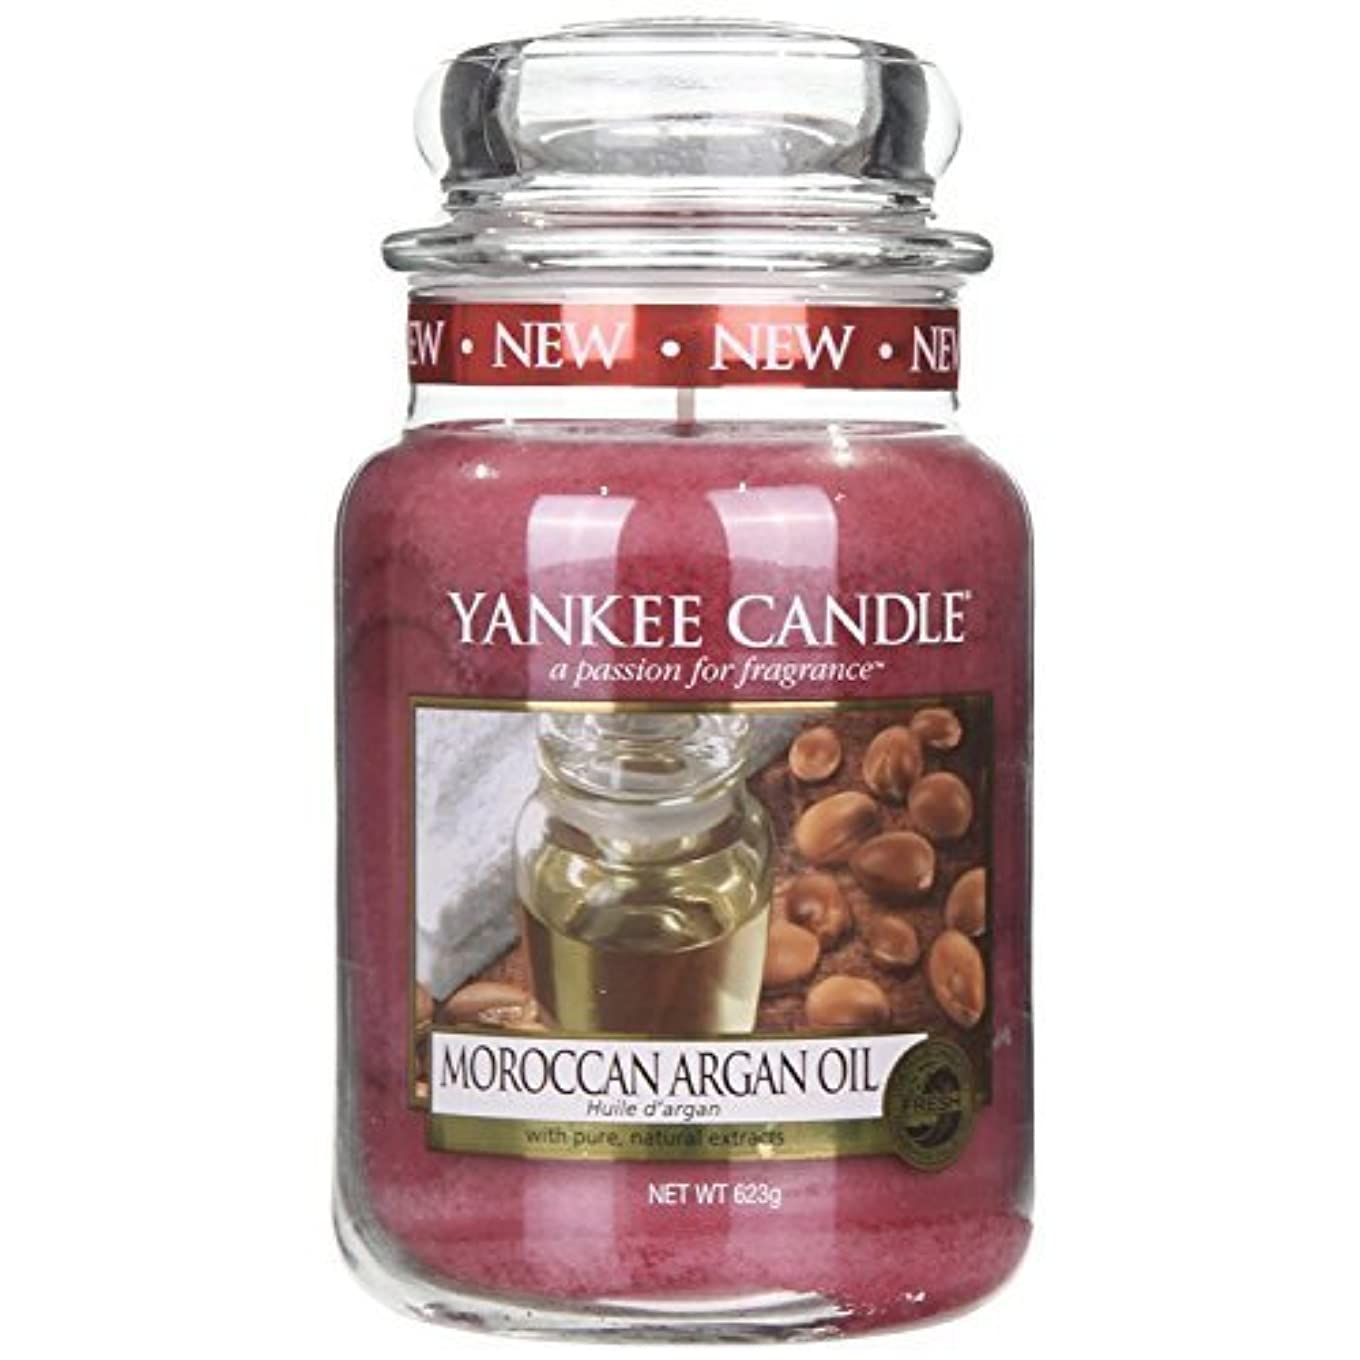 猫背認可防腐剤Yankee Candle MOROCCAN ARGAN OIL 22oz Large Jar Candle - UK Exclusive by Yankee Candle [並行輸入品]